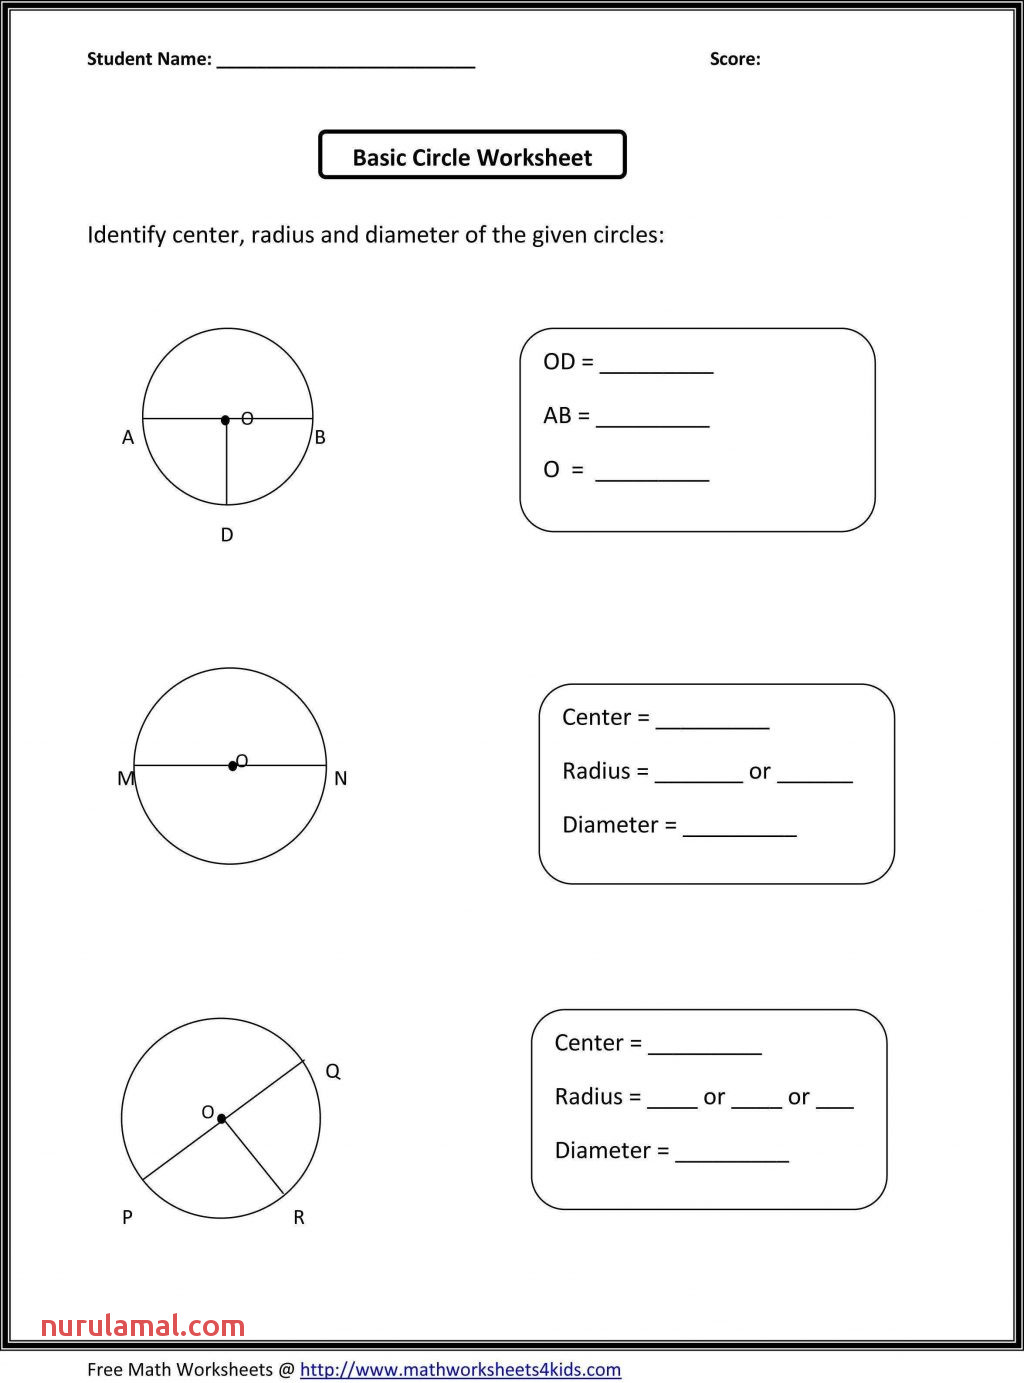 Proofreading Practice Worksheets Worksheet Ideas Chap12 Pdf